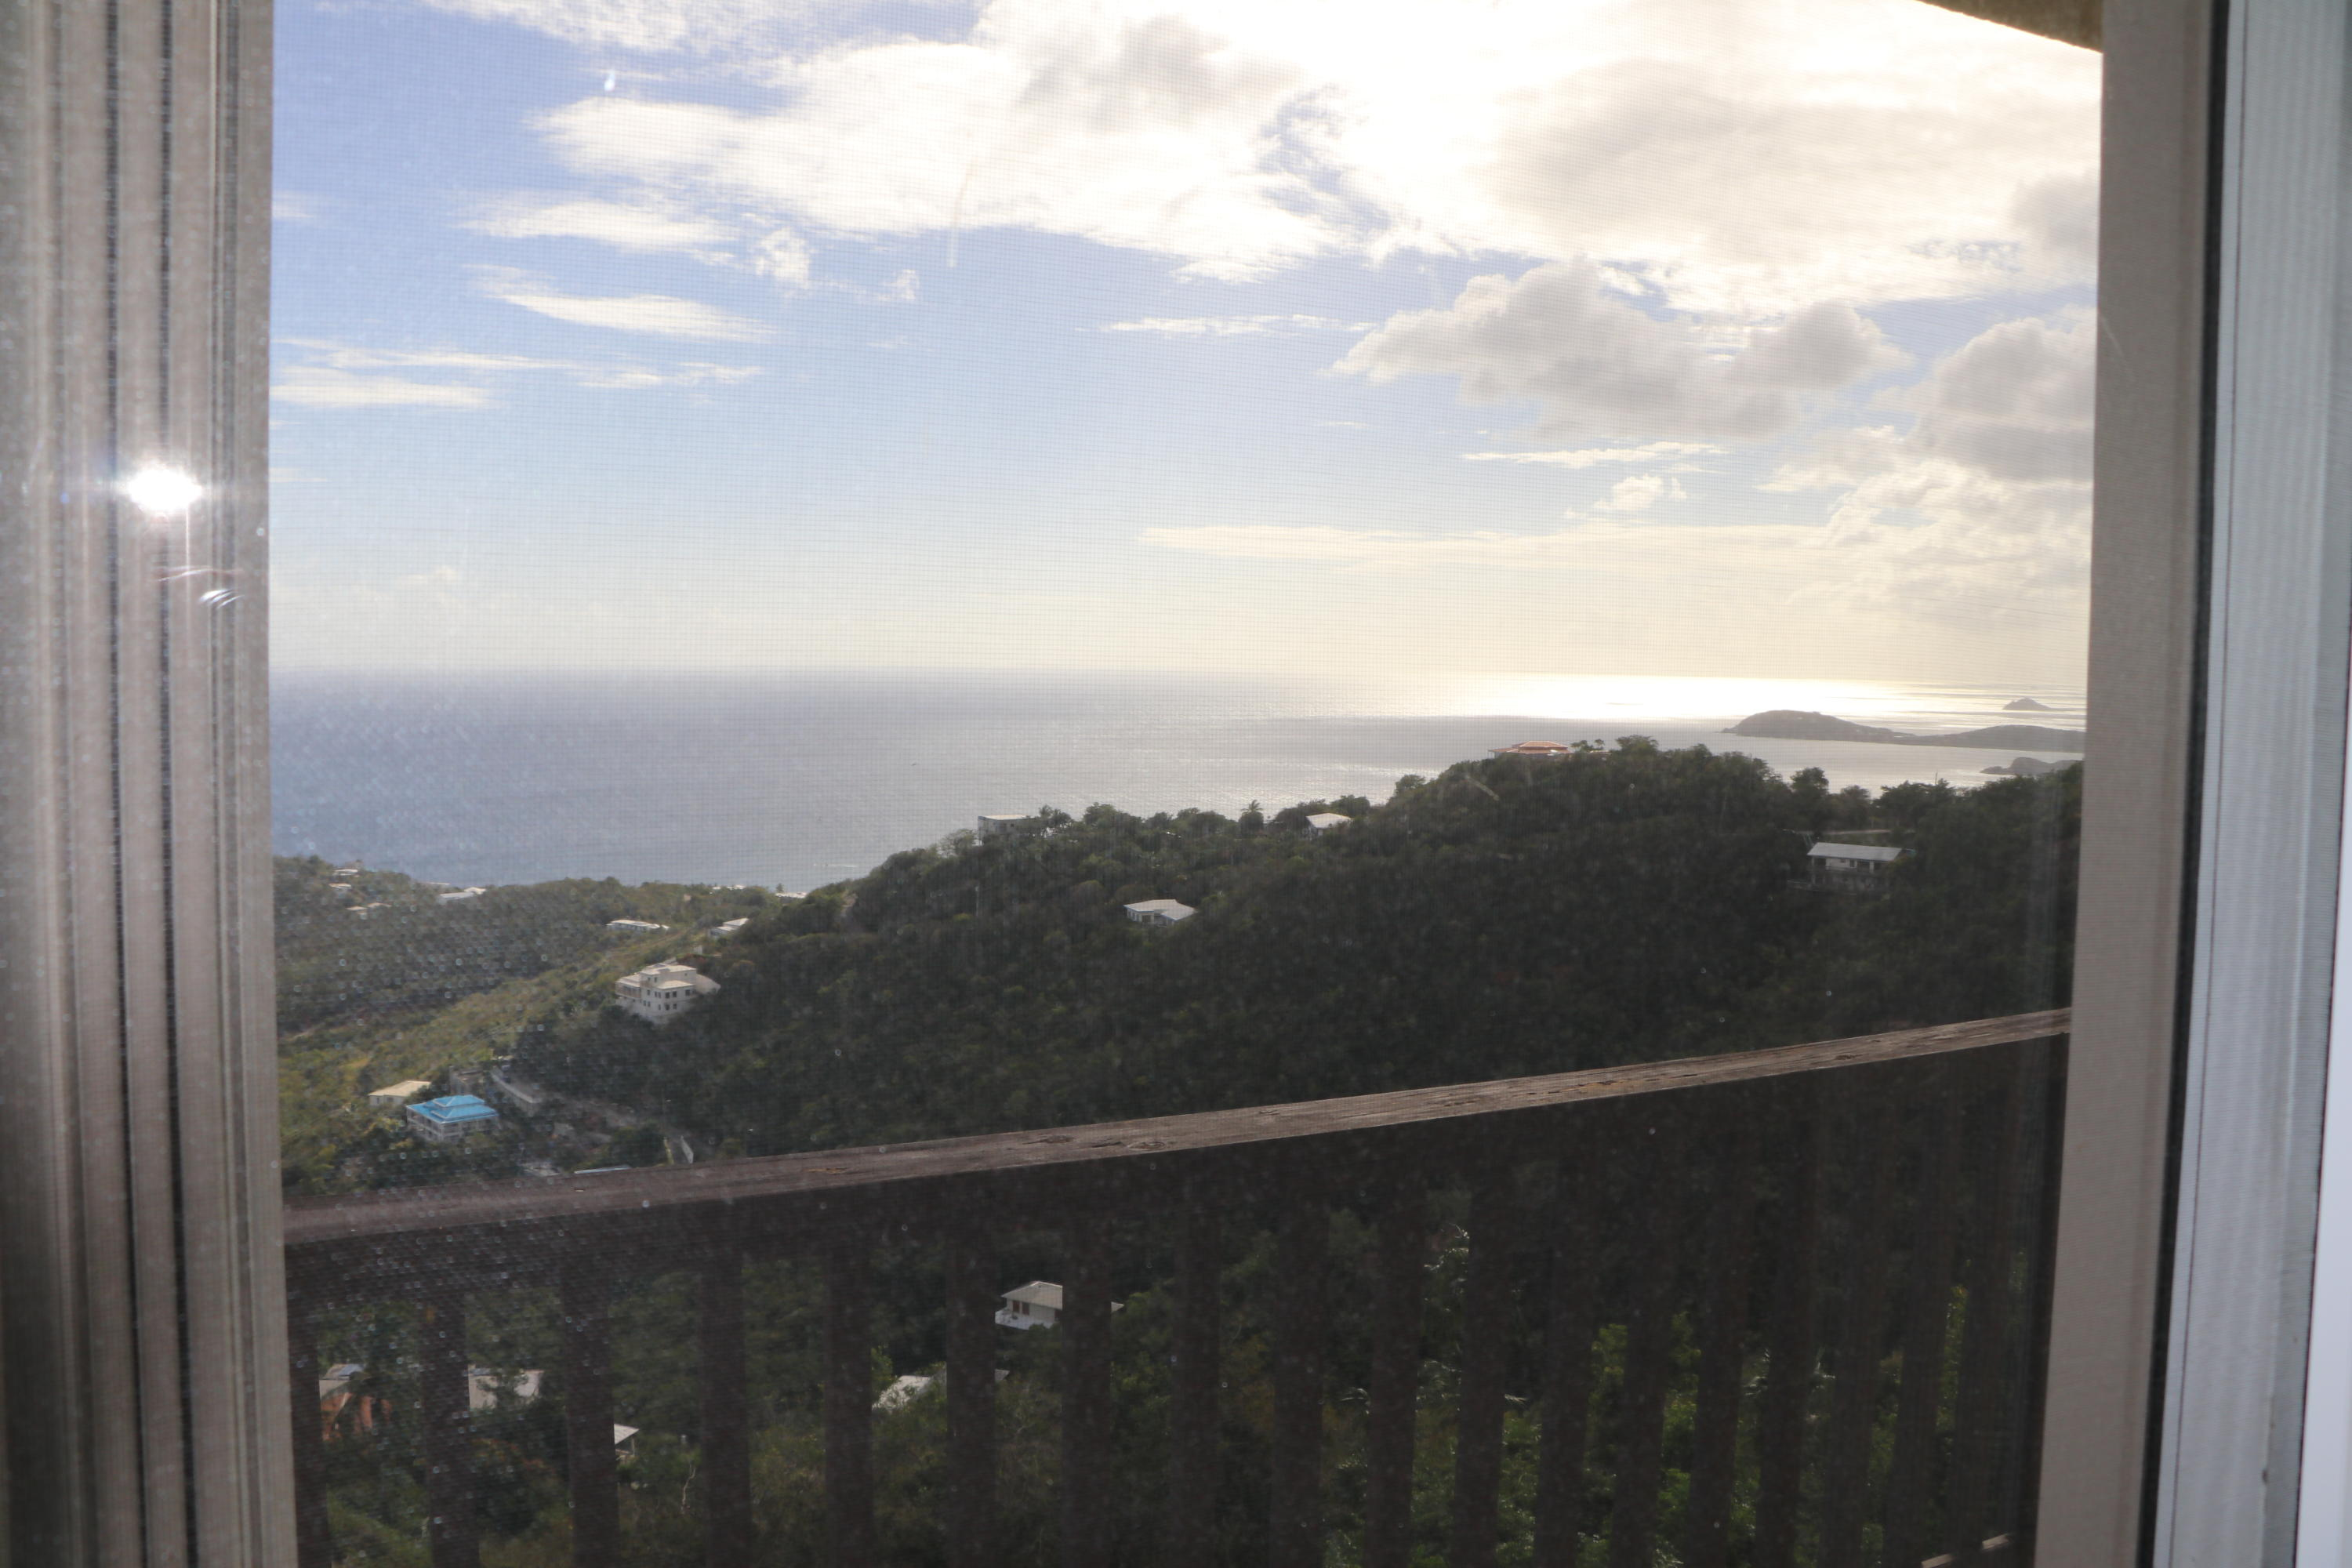 Additional photo for property listing at Frenchman's Heights A-4 Frenchman Bay FB Frenchman's Heights A-4 Frenchman Bay FB St Thomas, Virgin Islands 00802 United States Virgin Islands